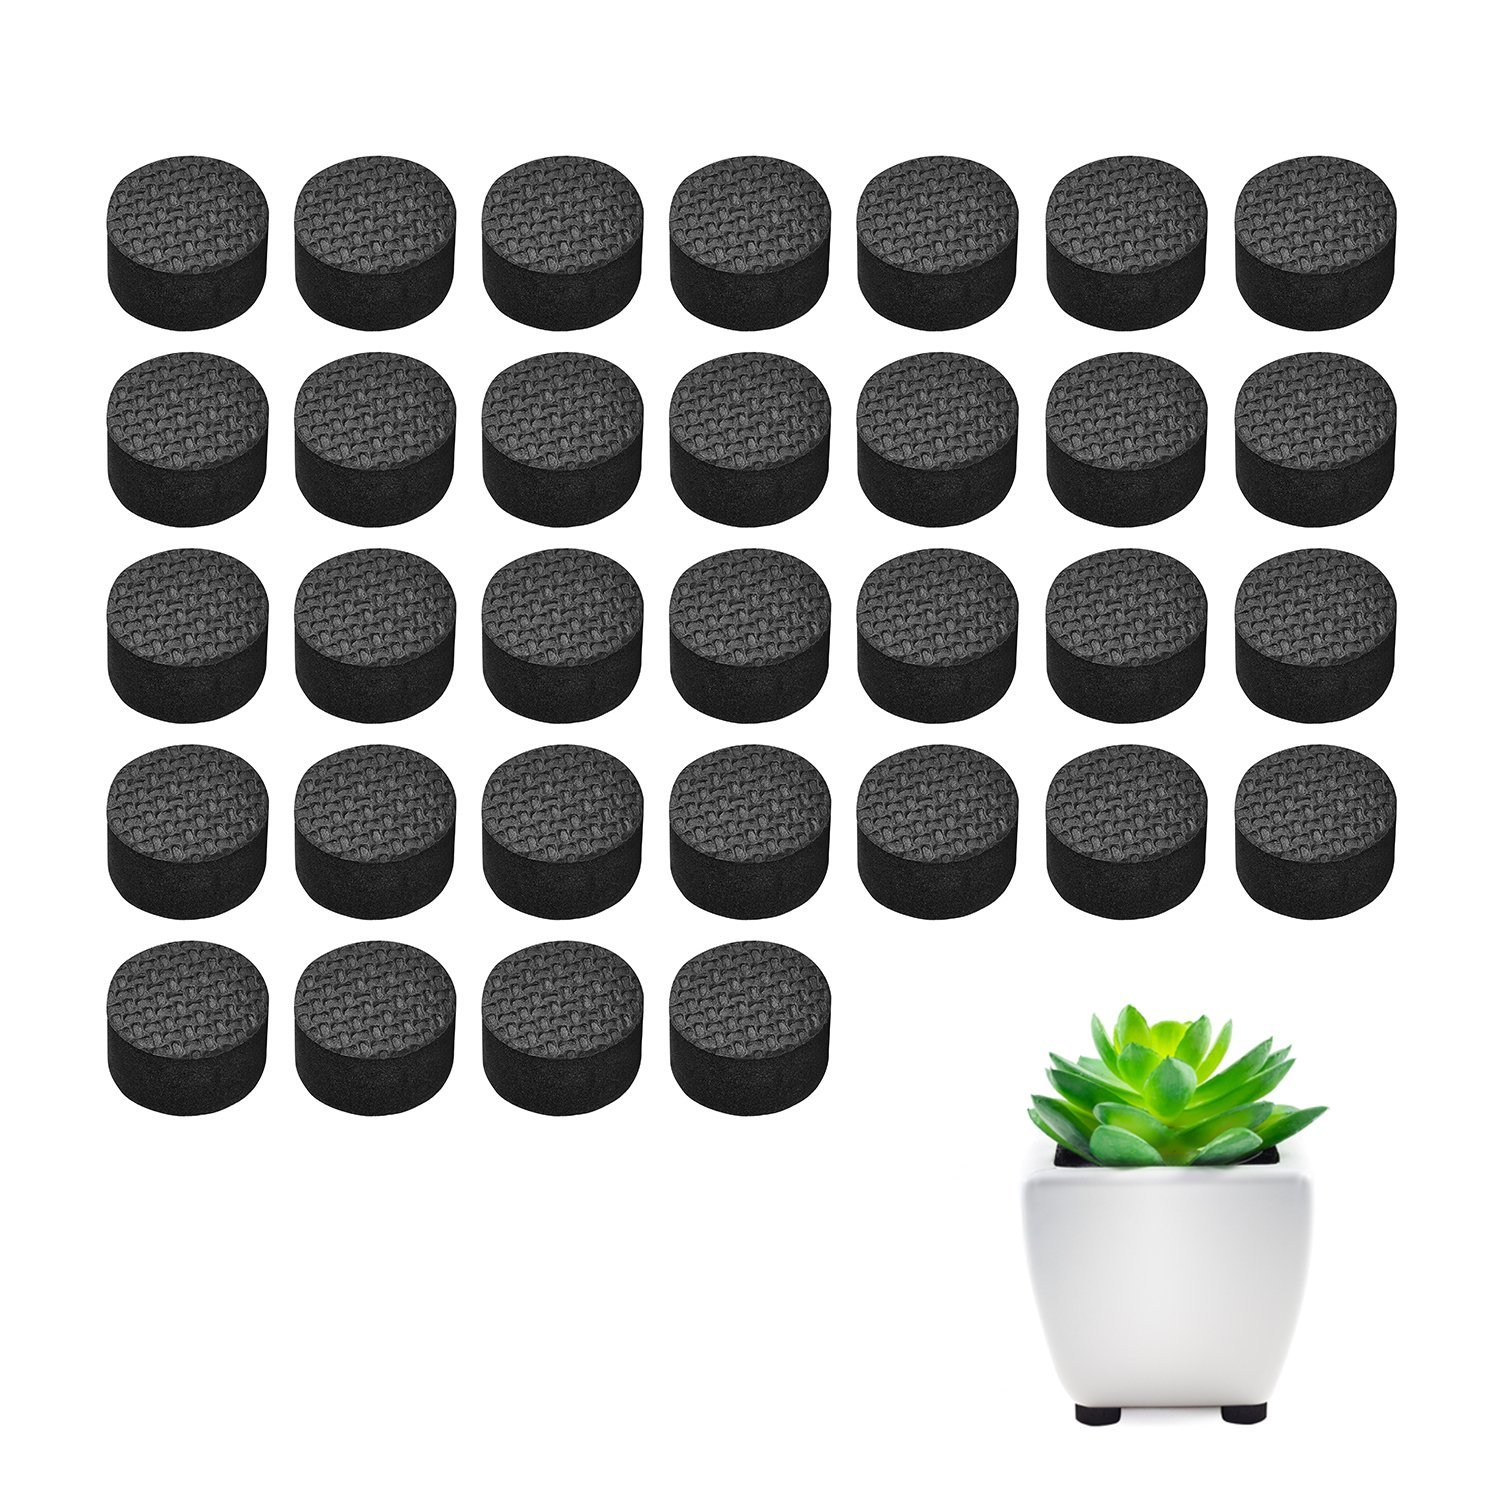 Pot Feet, Basenor Invisible Flower Pot Risers Anti-skin Furniture Pads with Strong Adhesive for Plant Pots, 32 pack by Basenor